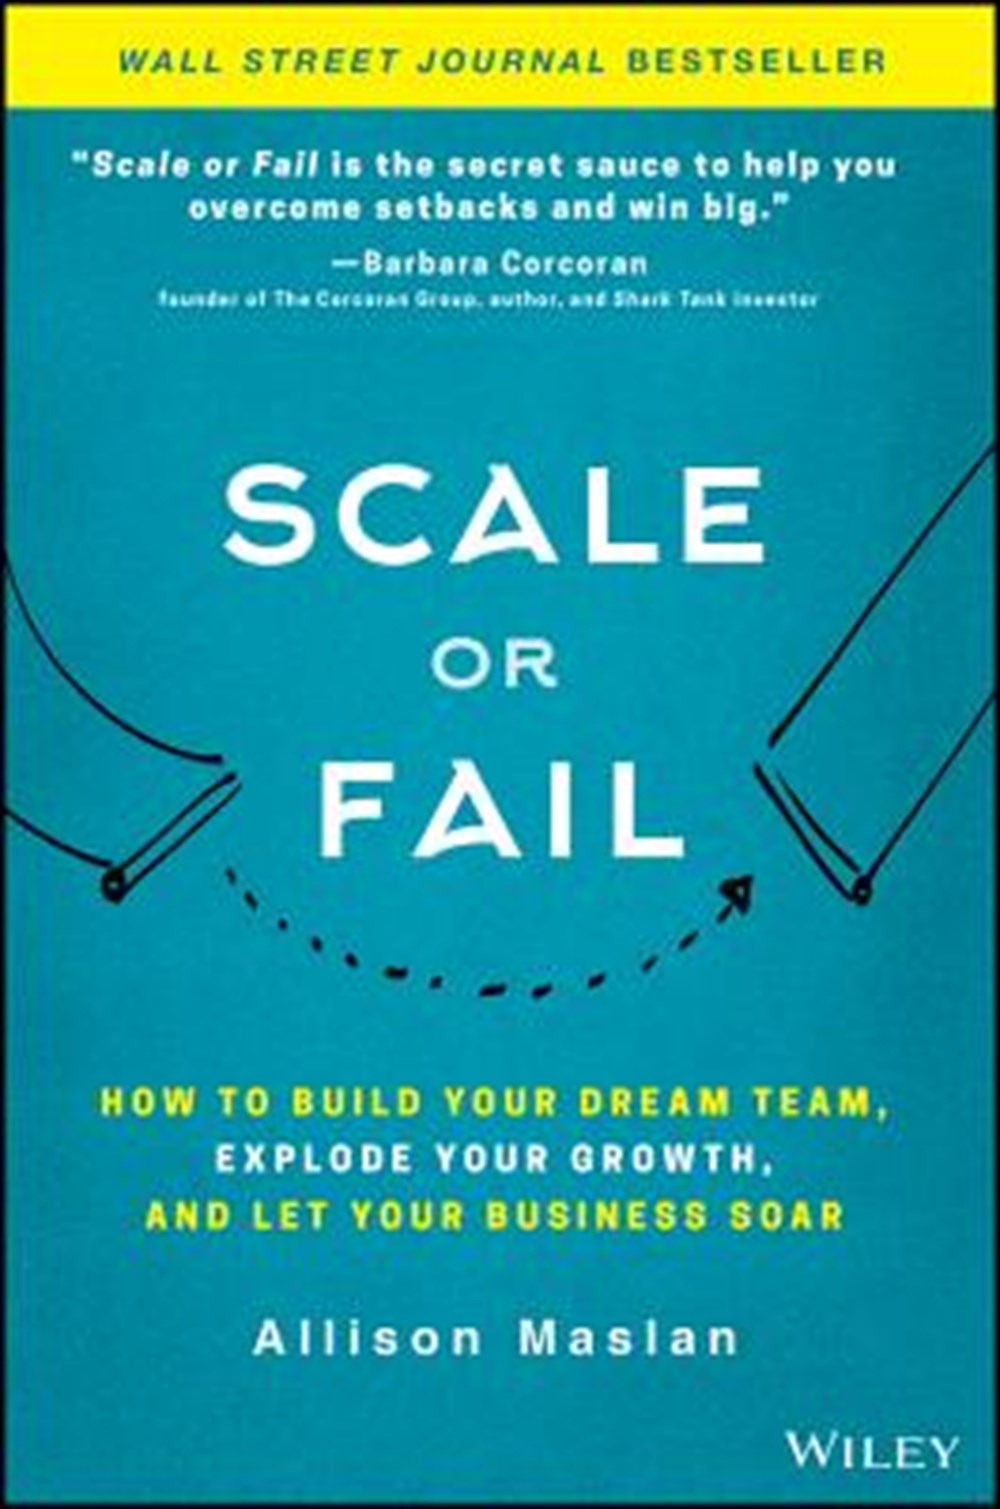 Scale or Fail How to Build Your Dream Team, Explode Your Growth, and Let Your Business Soar